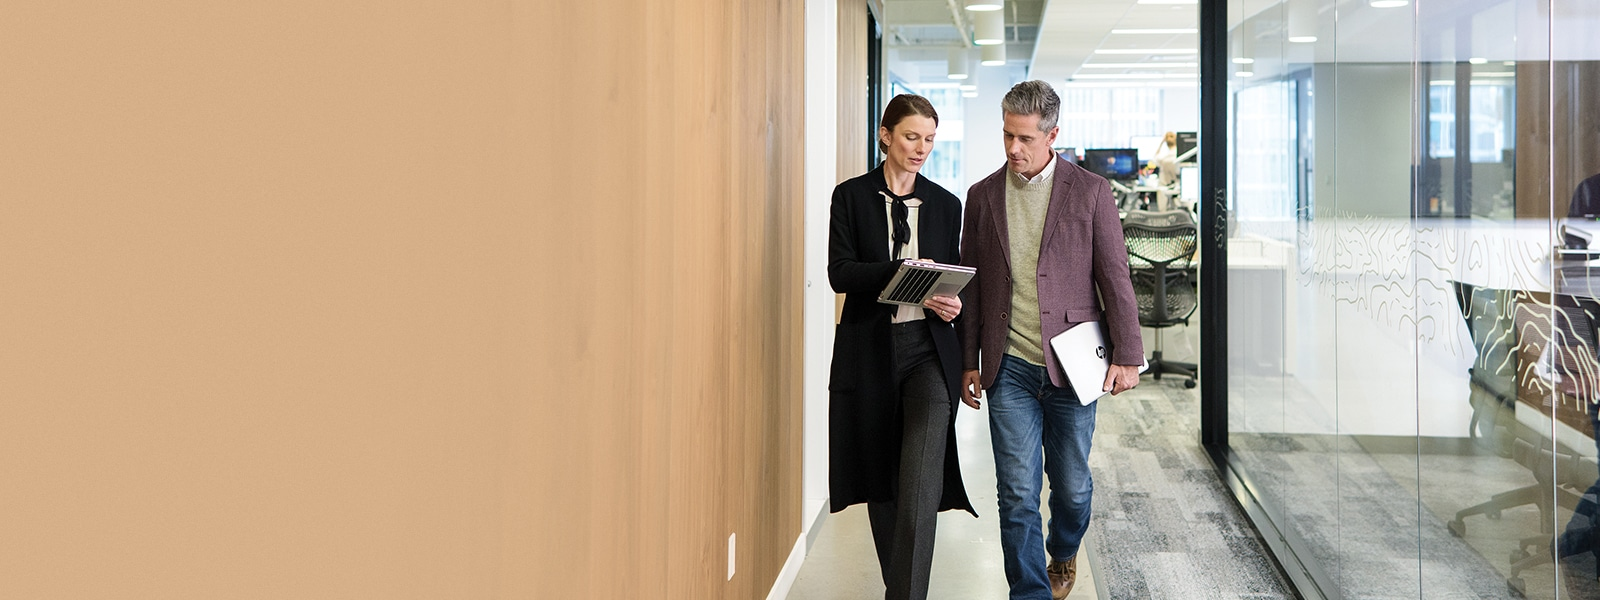 A man and woman walk in an office setting.